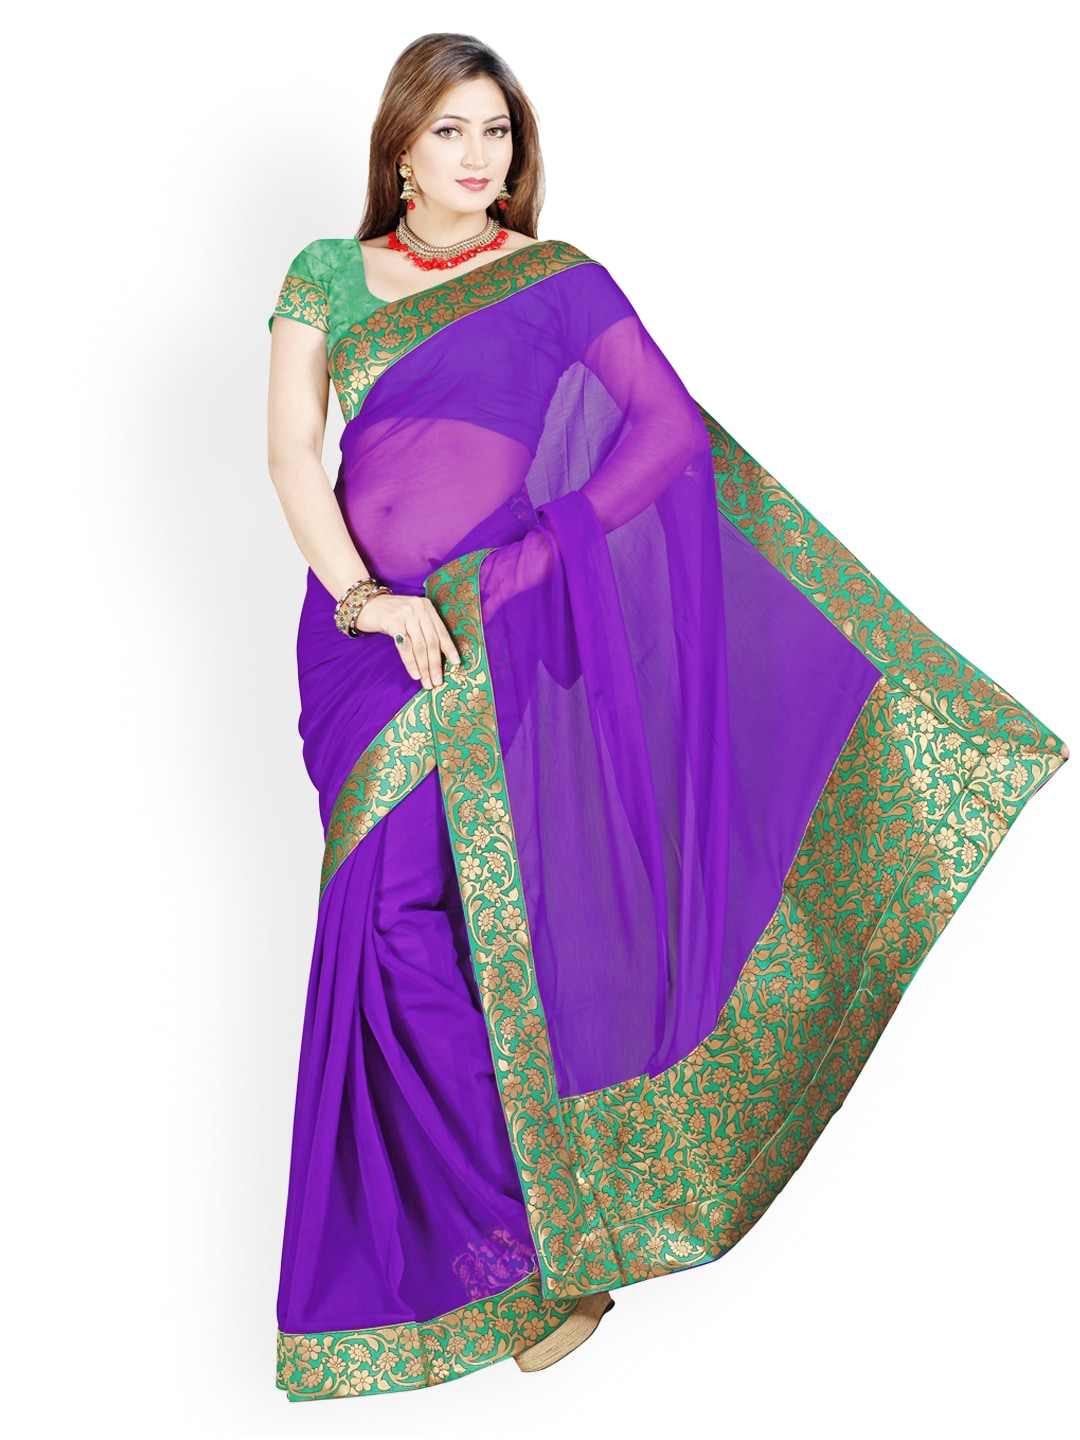 Ishin Purple Faux Chiffon Fashion Saree (multicolor)